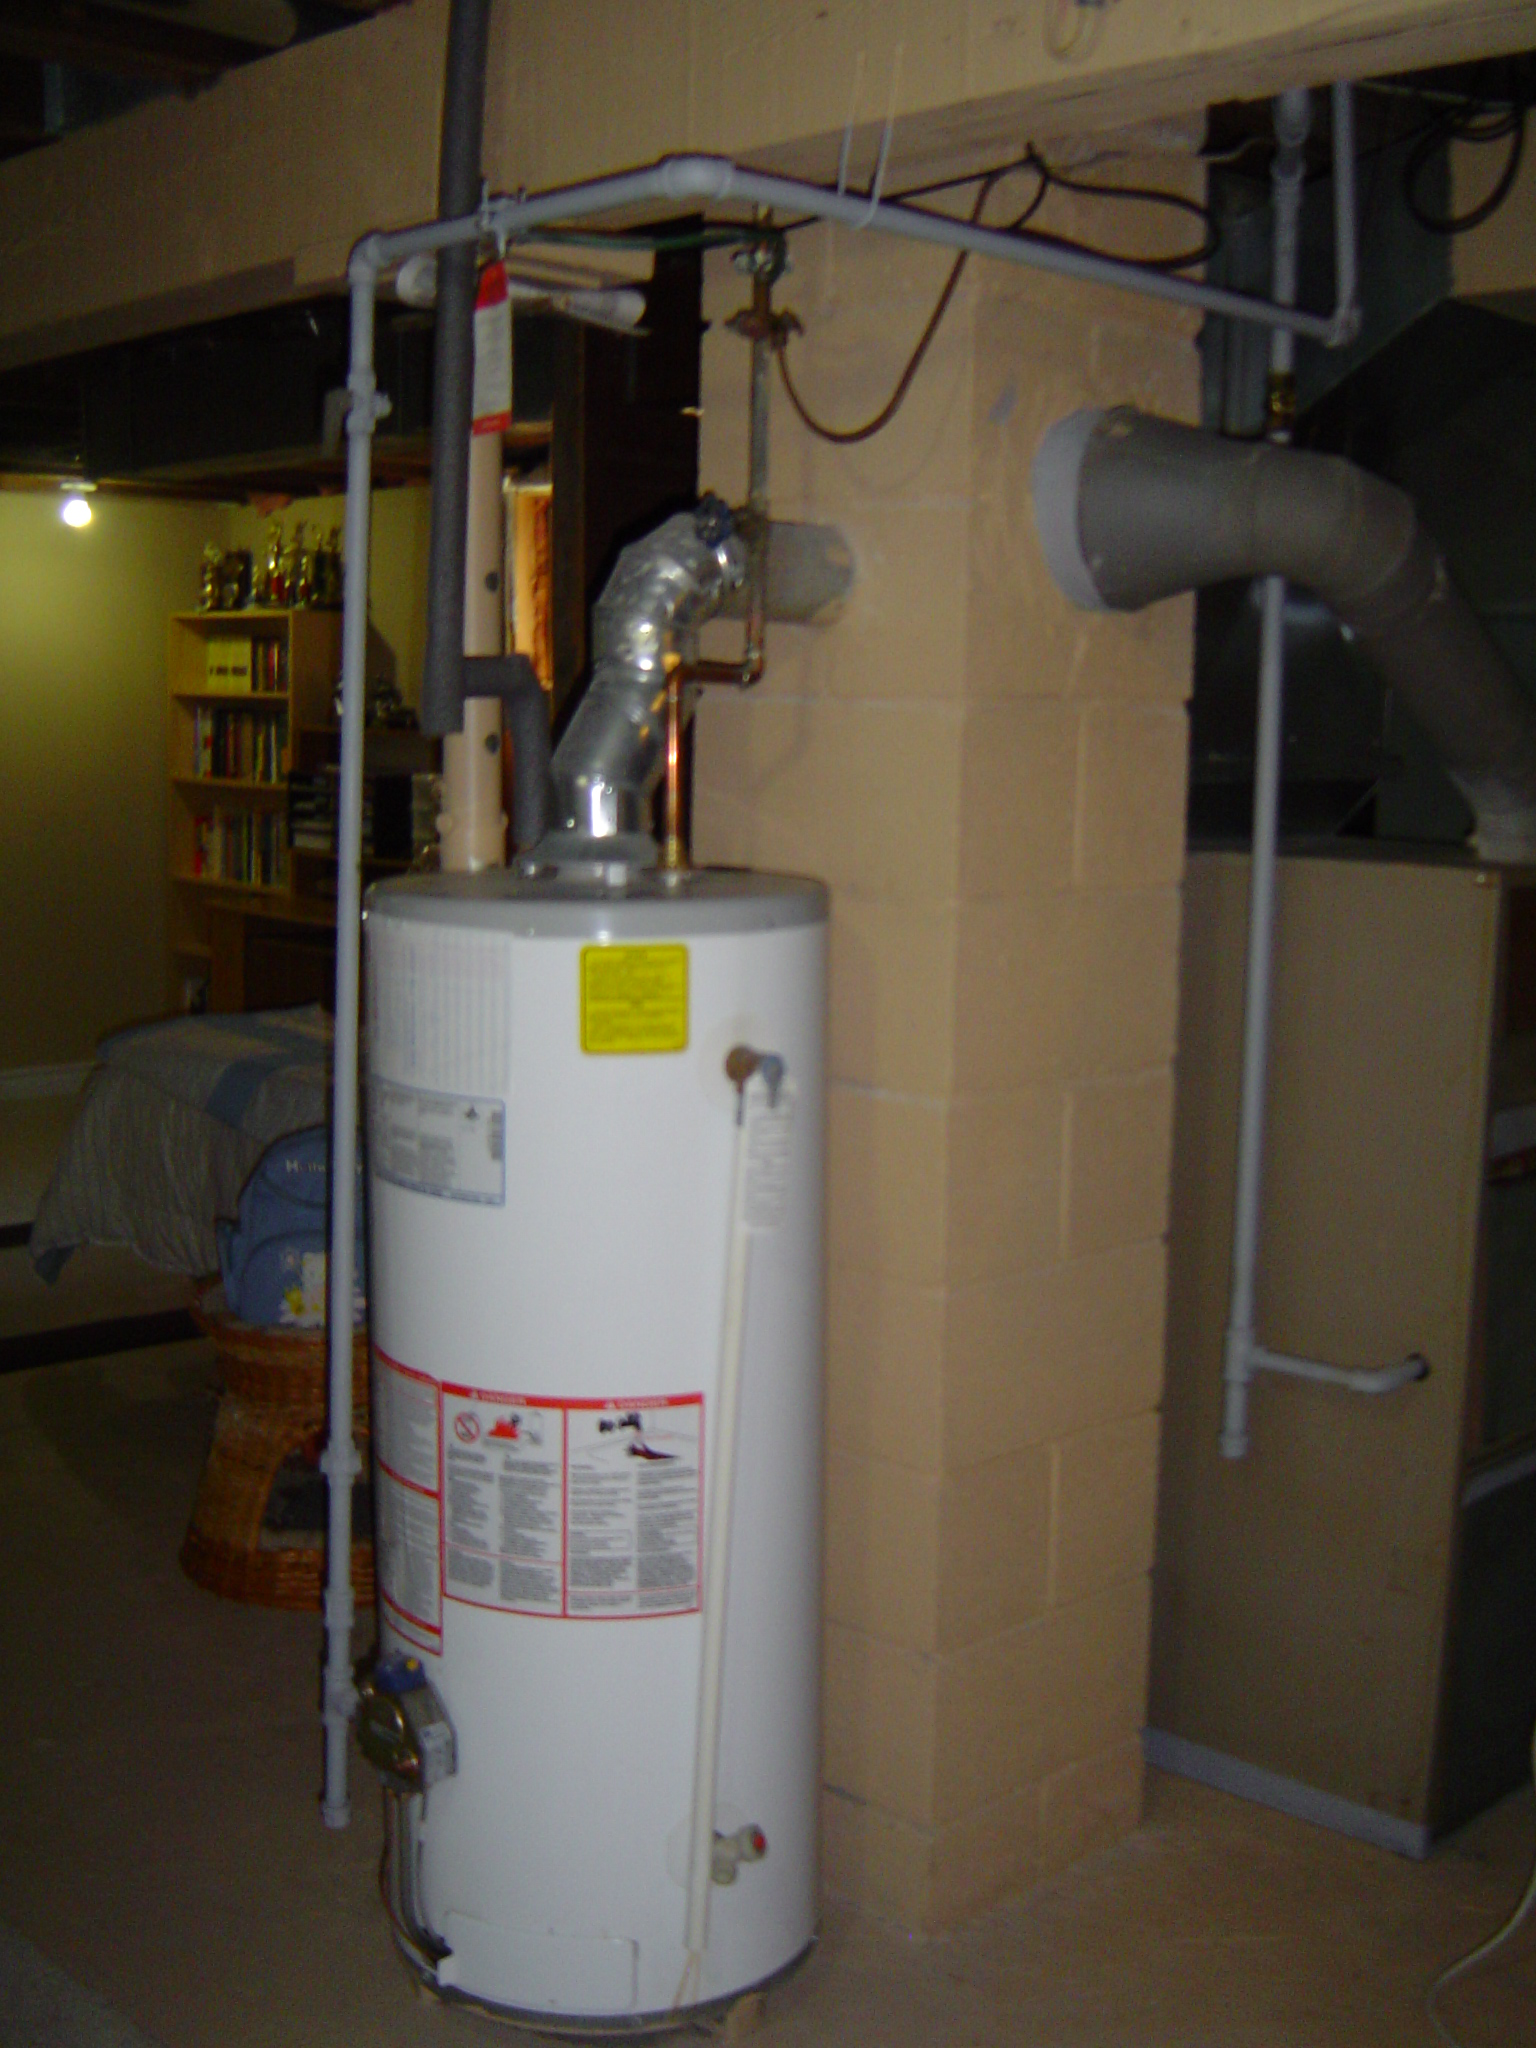 Rental water heater